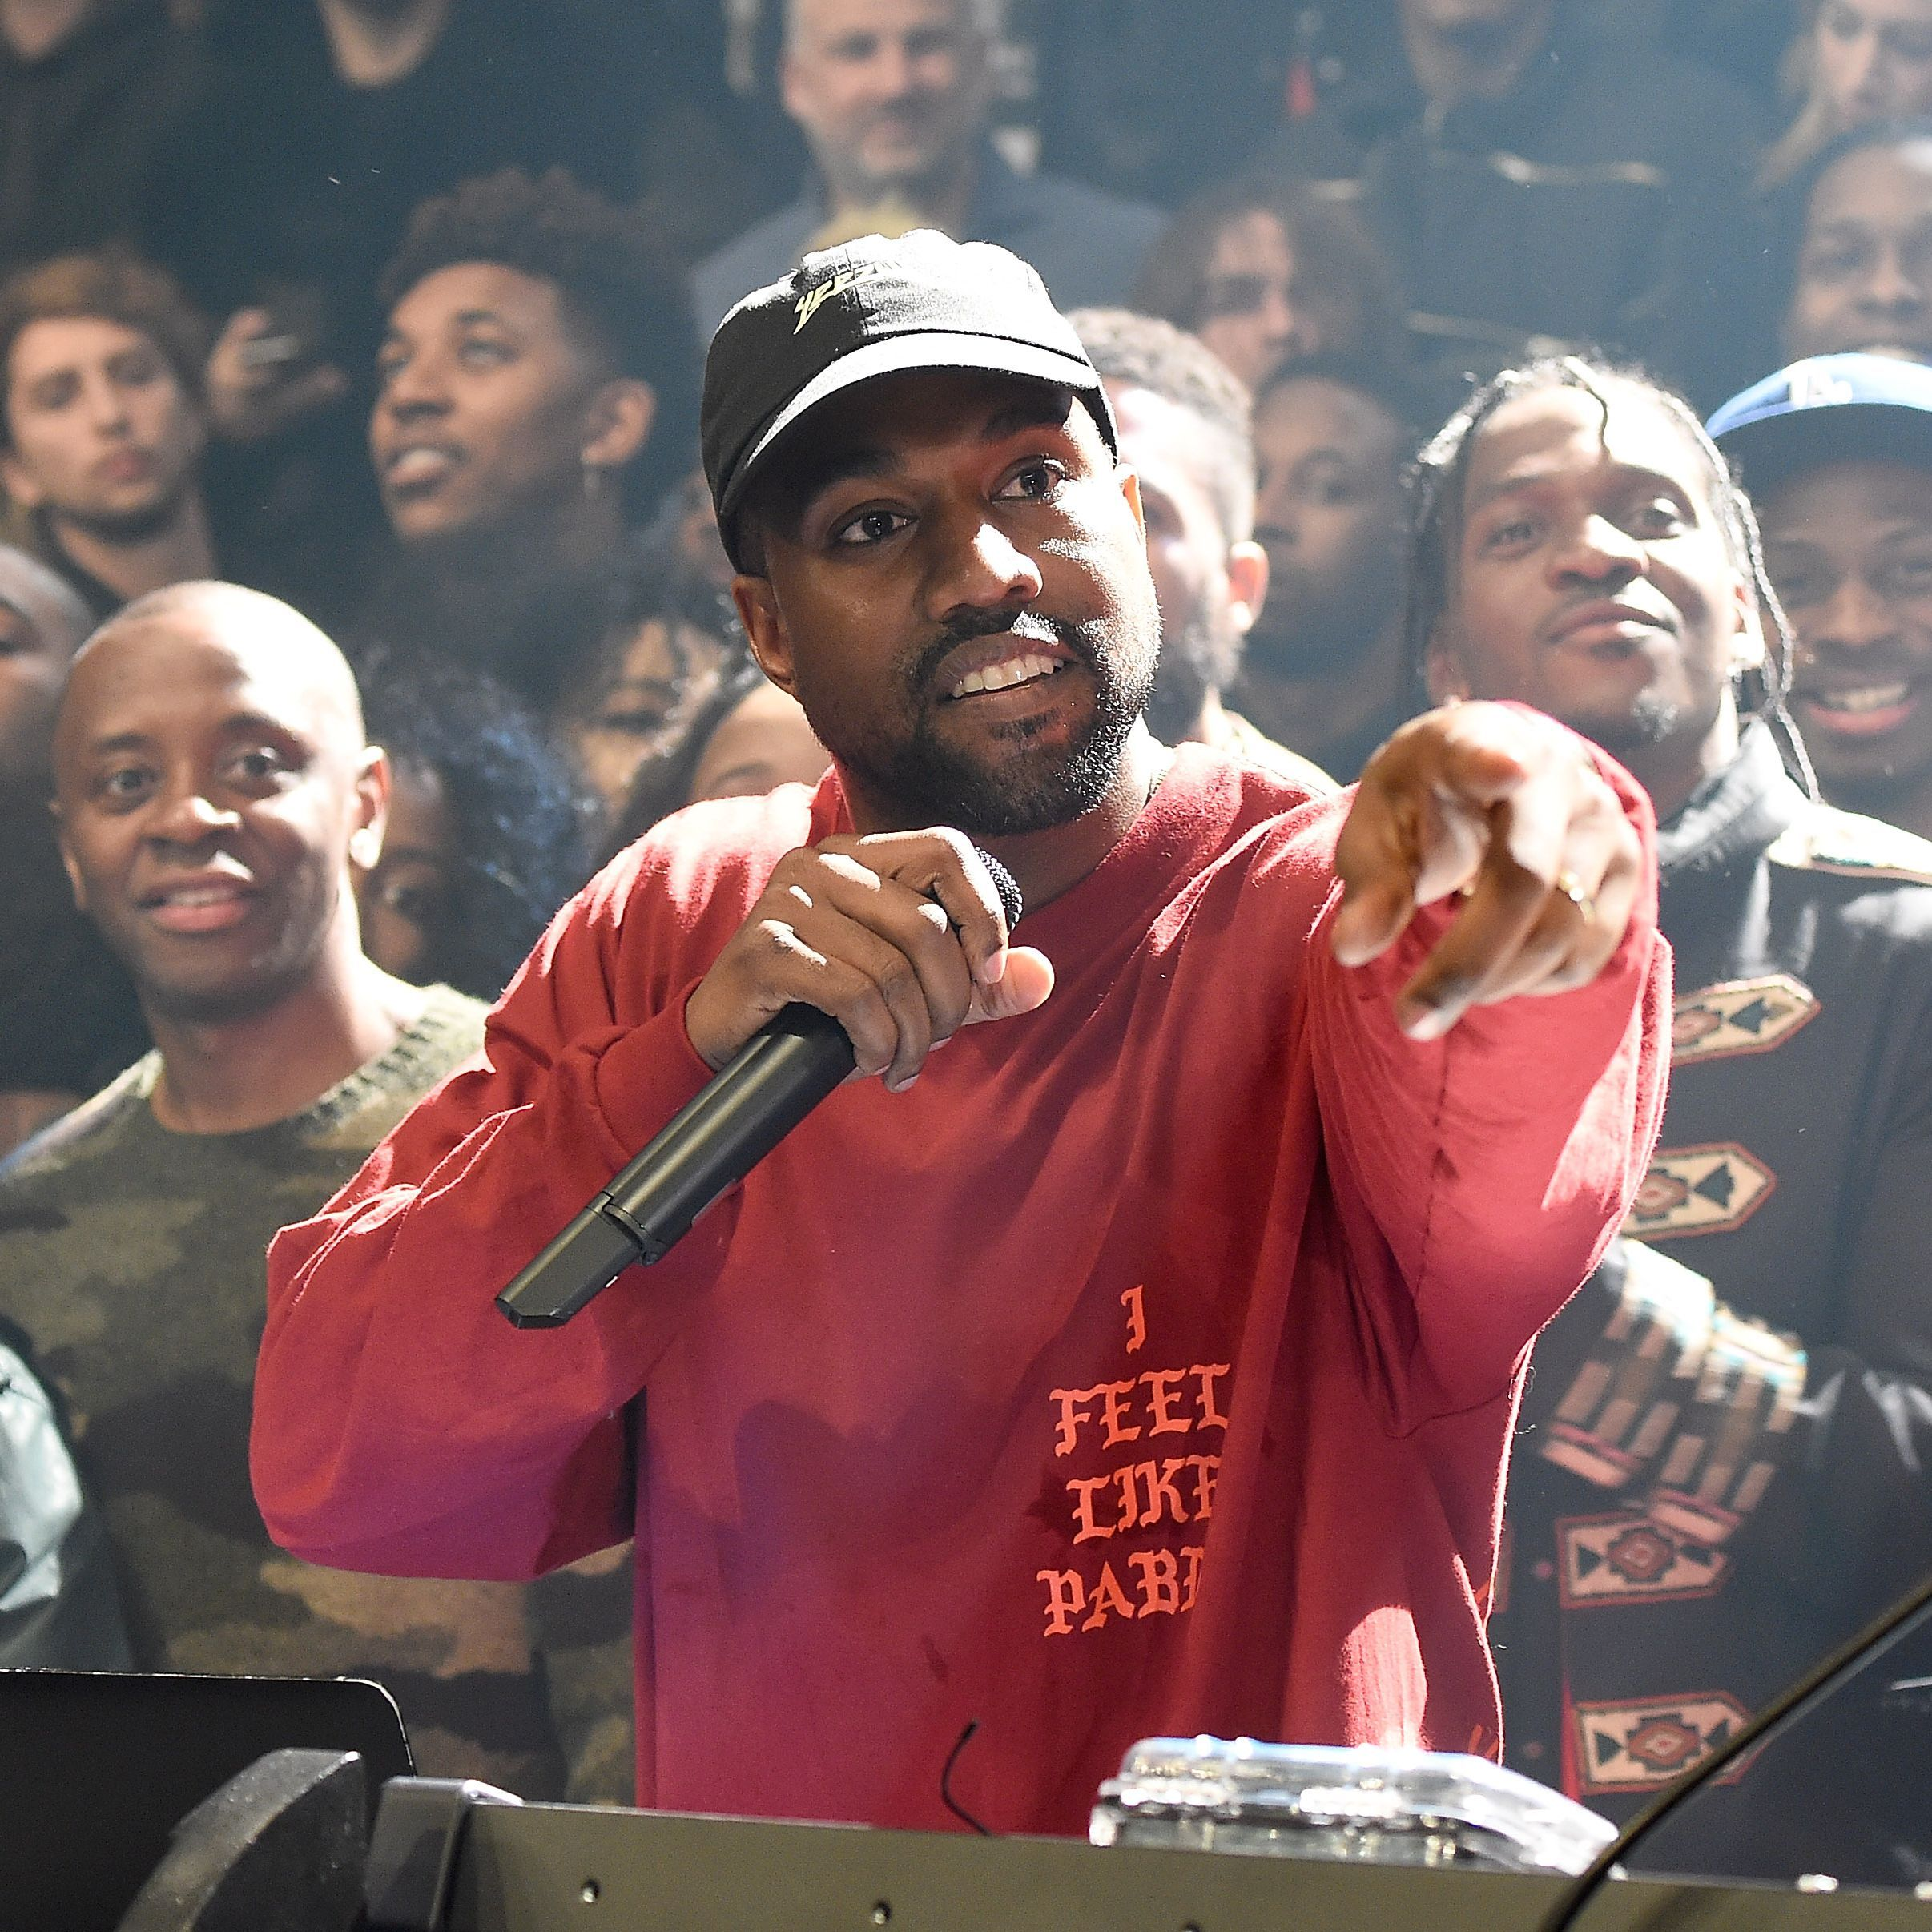 Can A Yeezy Dating Service Help Kanye West Fans Fall In Love  - MTV 34151fbd70ec